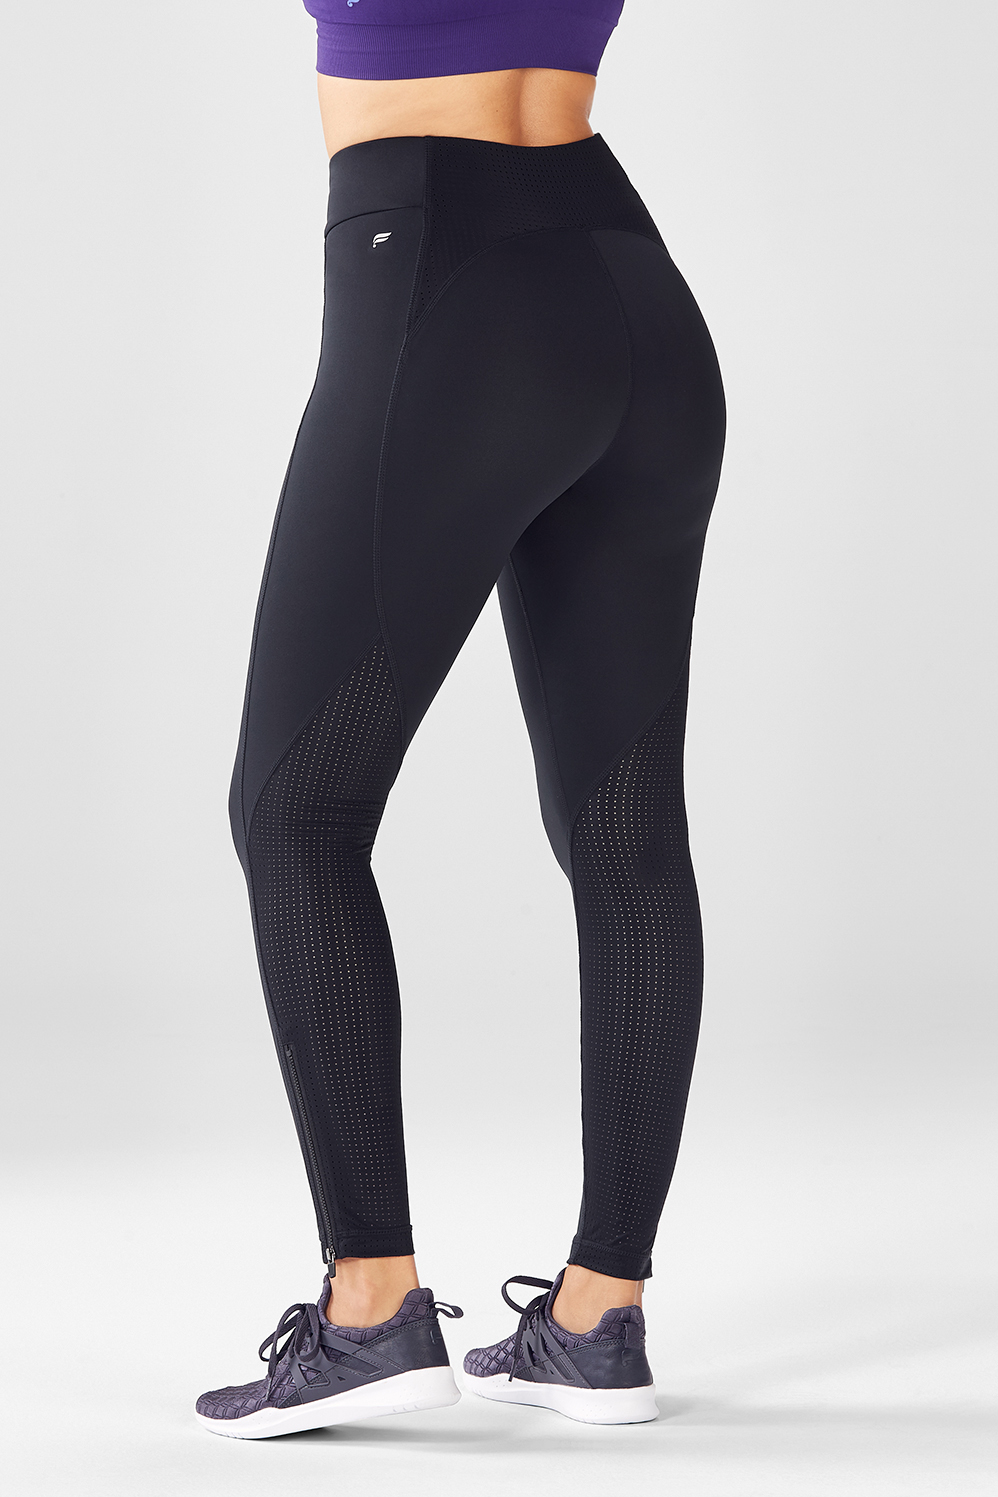 205e6bf0660 High-Waisted Solid Spin Bottoms - Fabletics